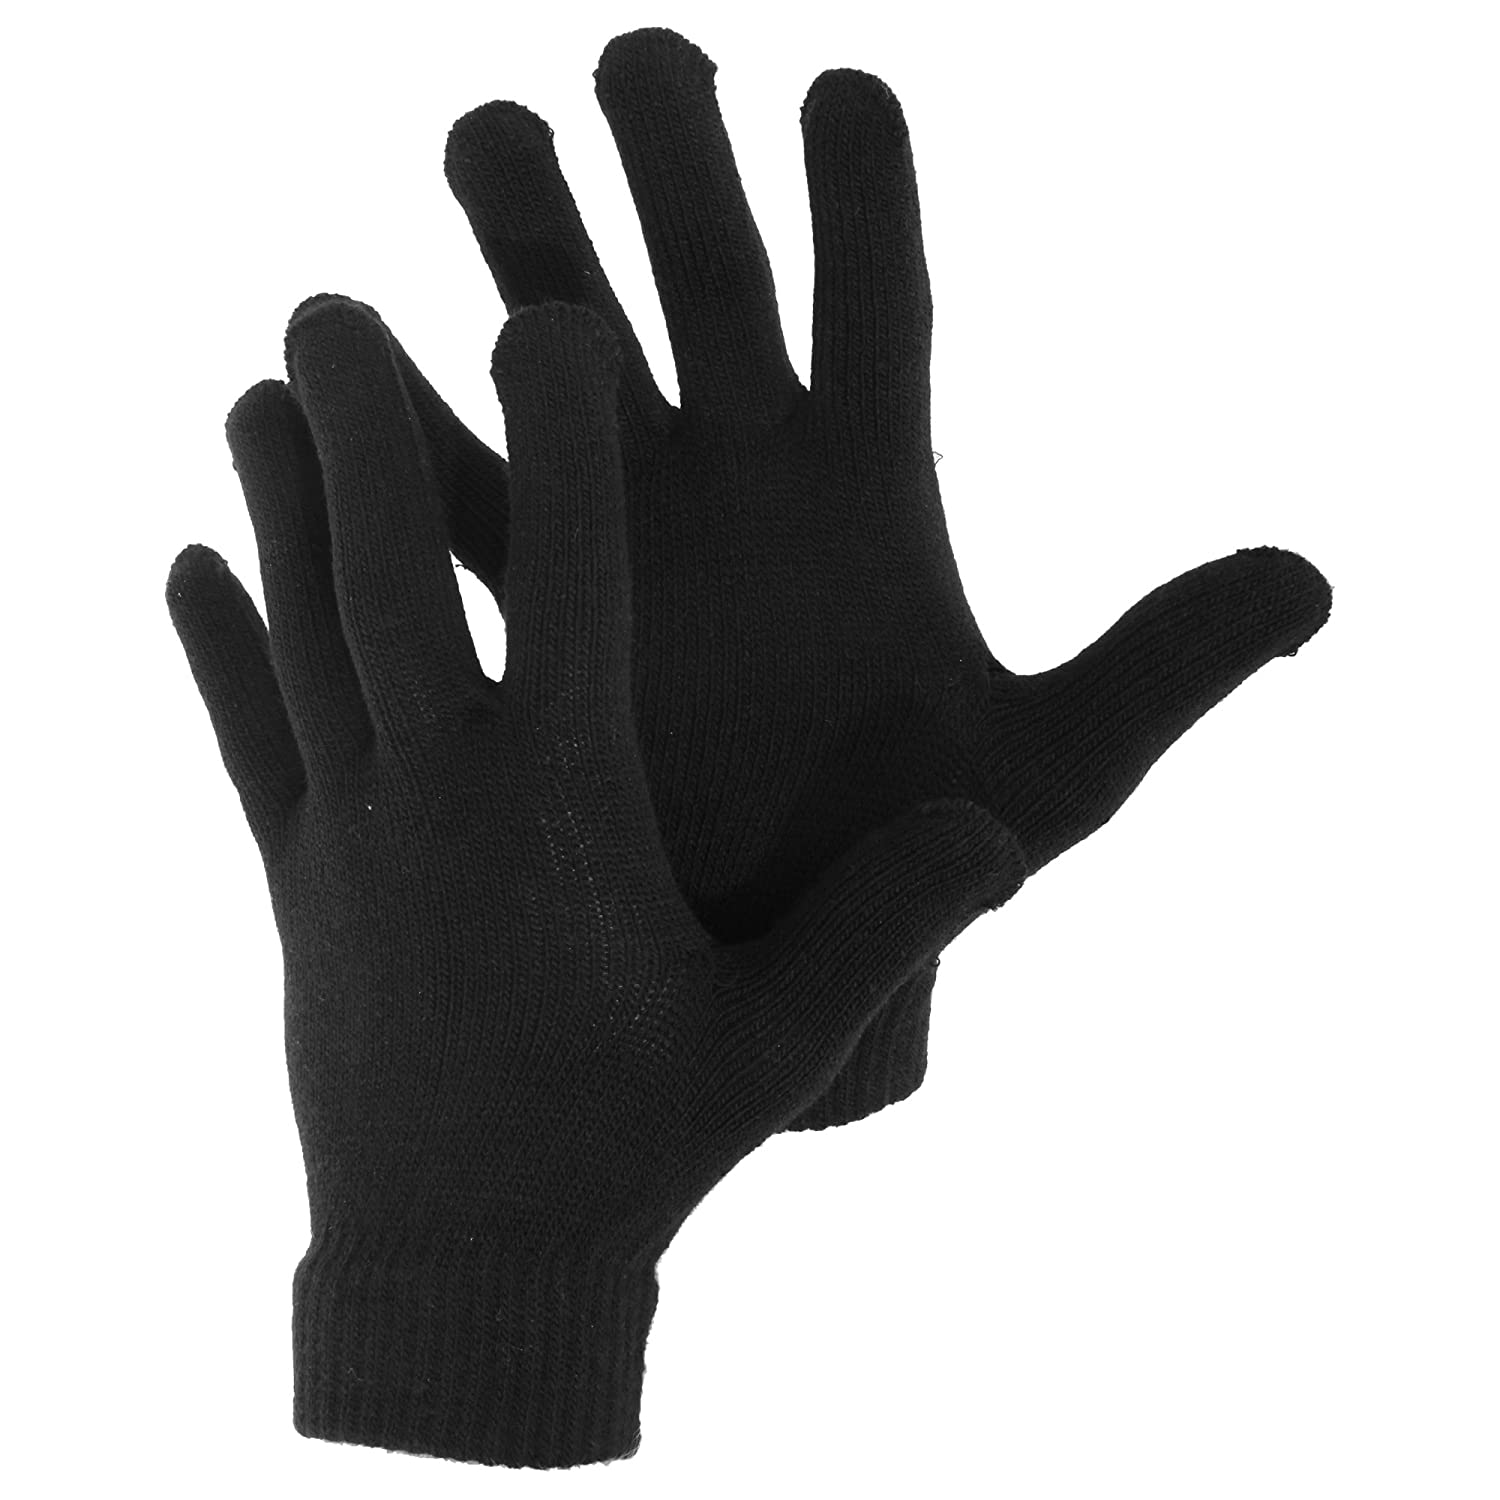 Herren Winter Magic Gloves Handschuhe